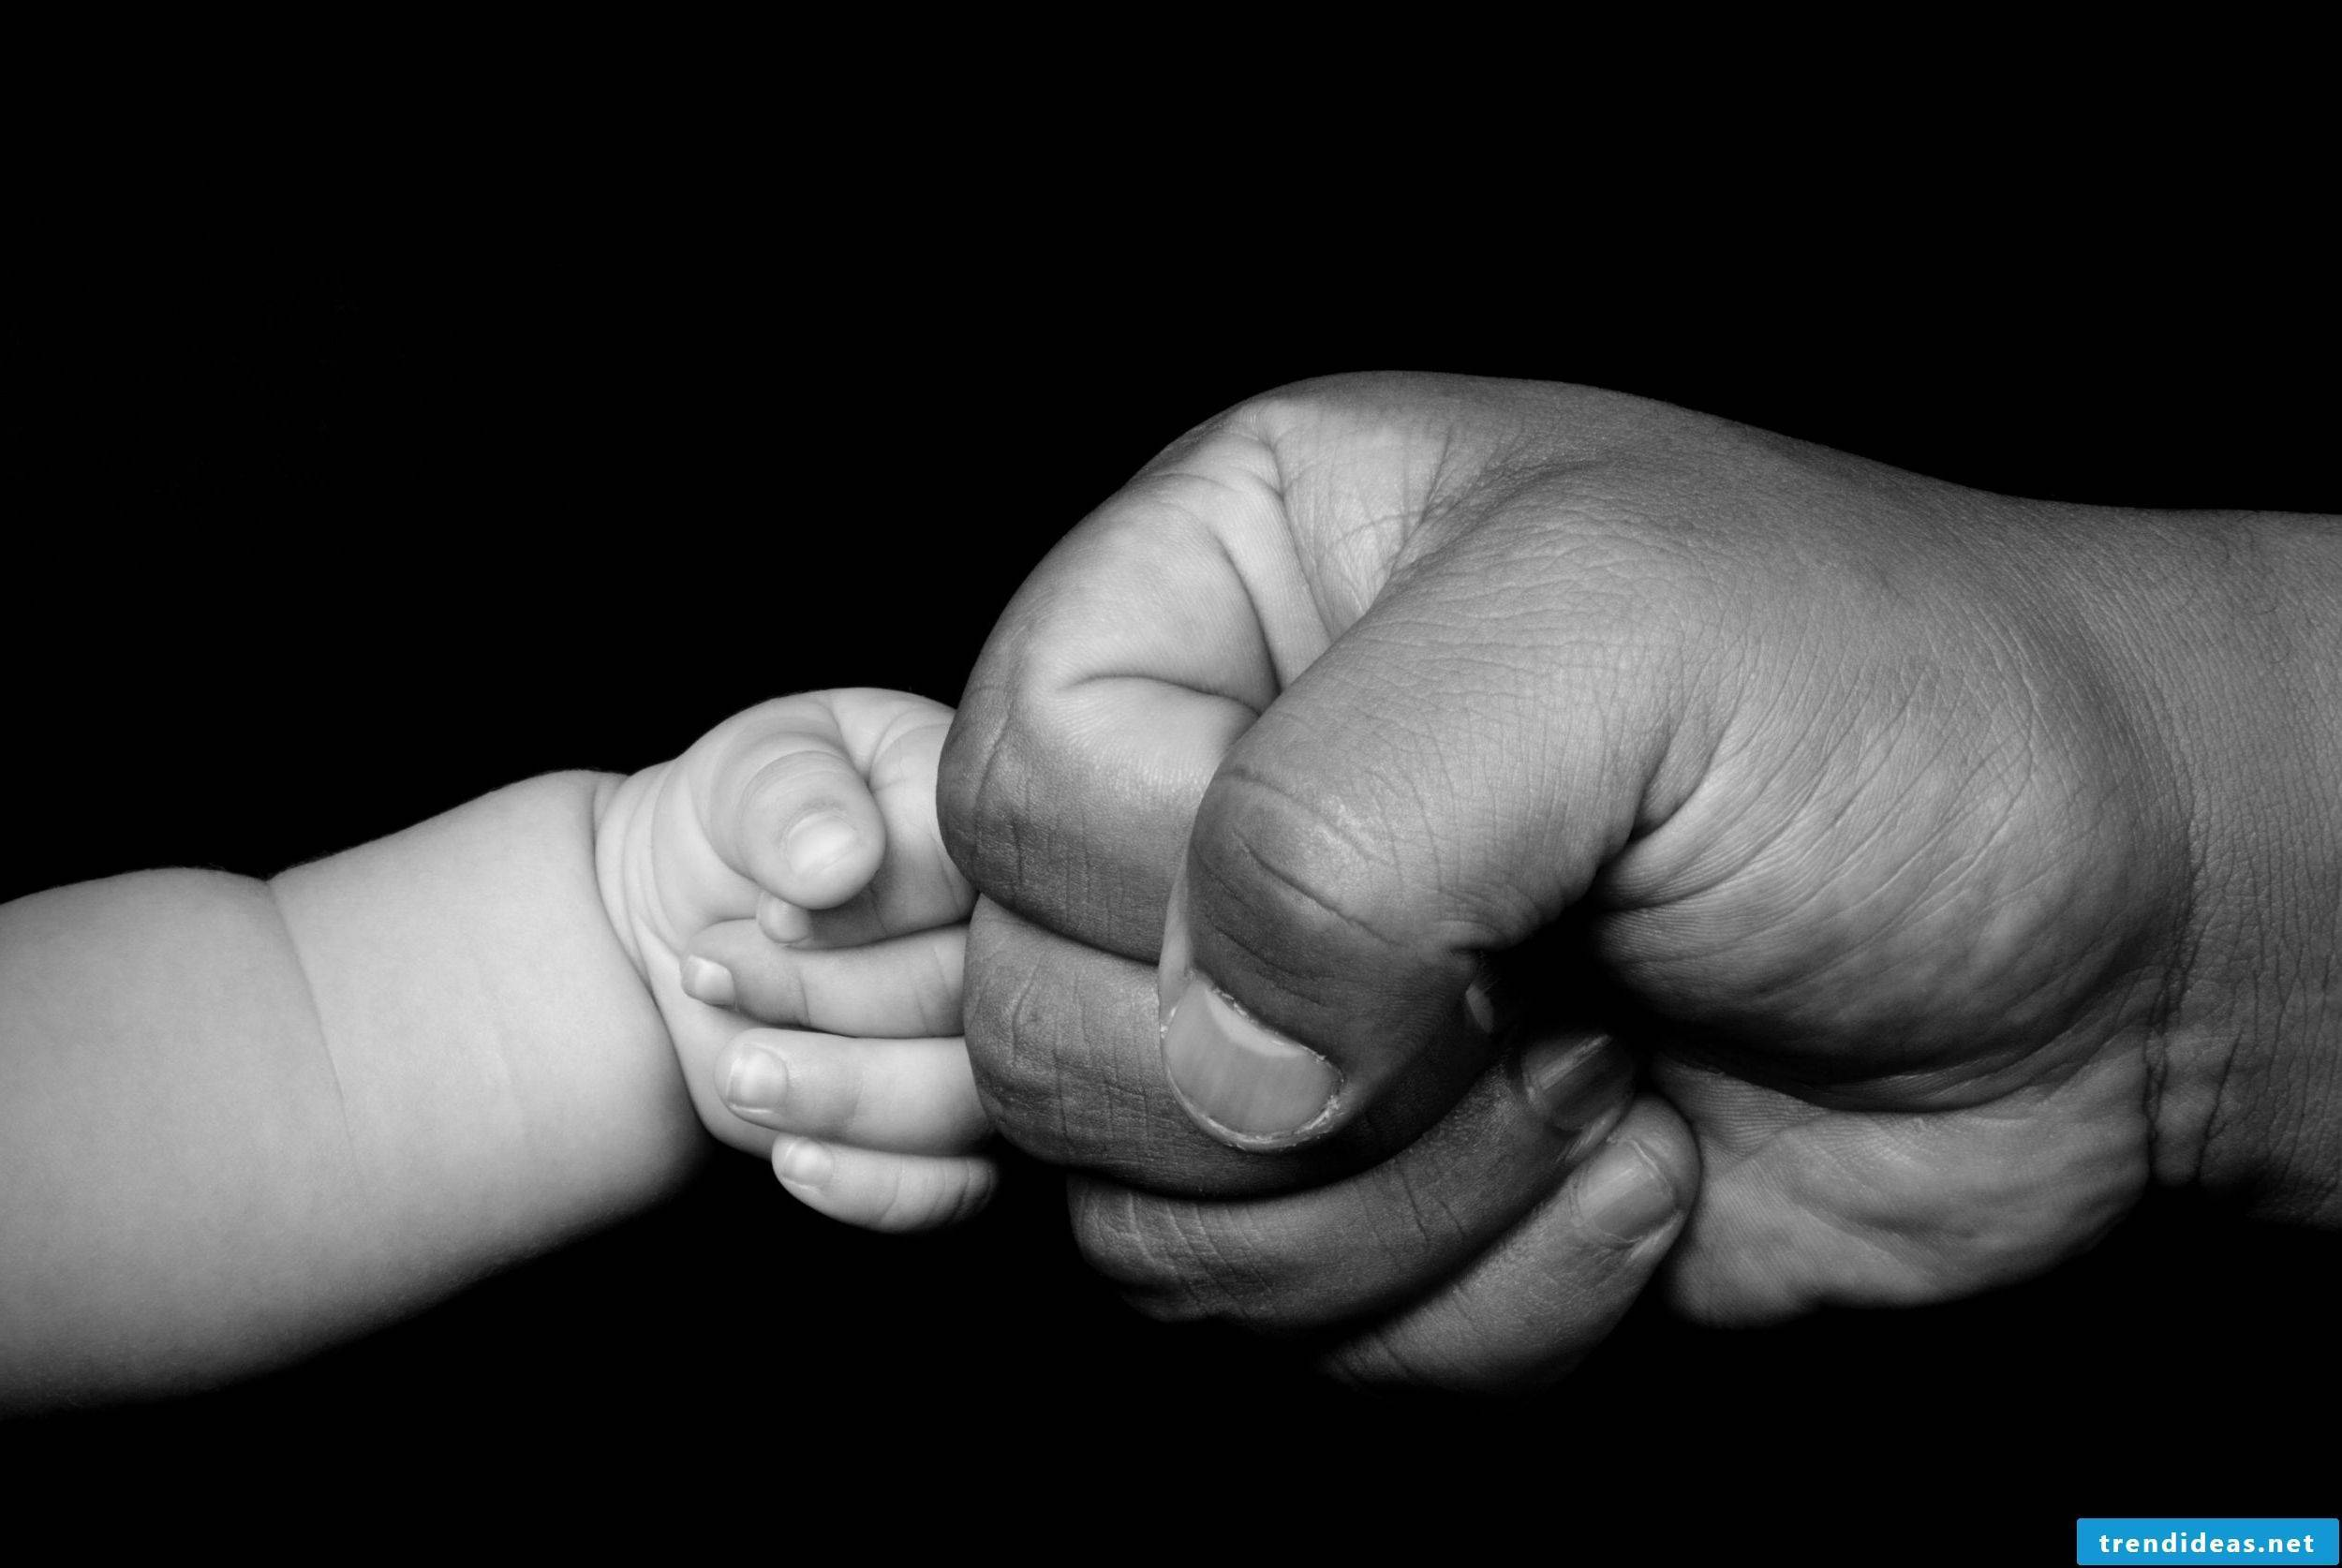 Father's Day 2018: Meaning and Customs